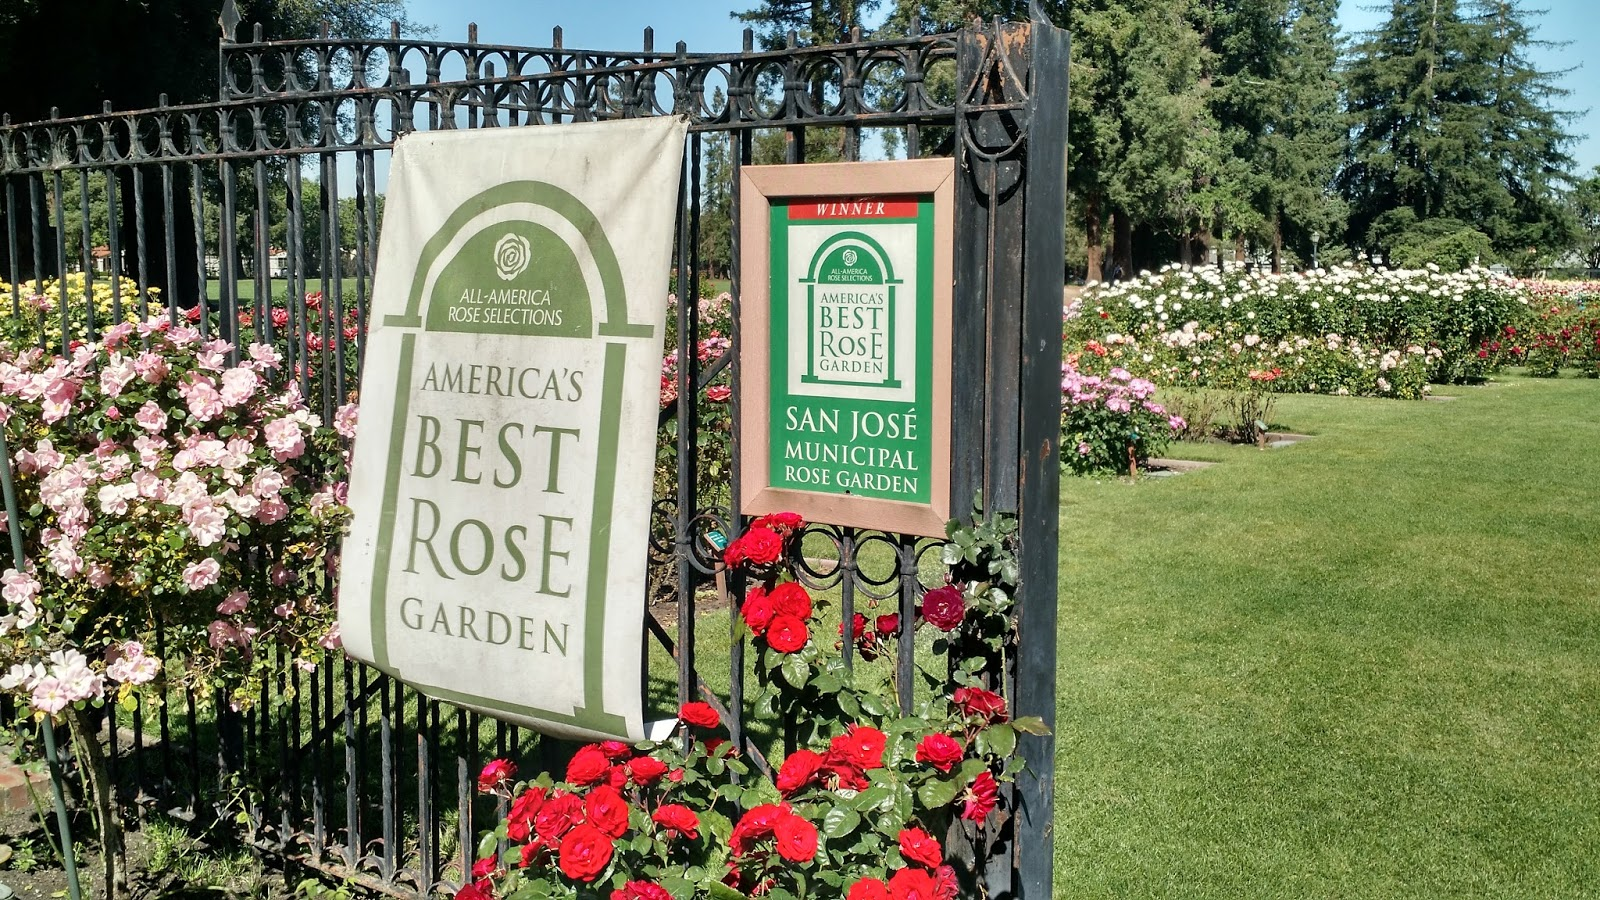 Roses In Garden: Paintsites Blog: San Jose Municipal Rose Garden May 4, 2017